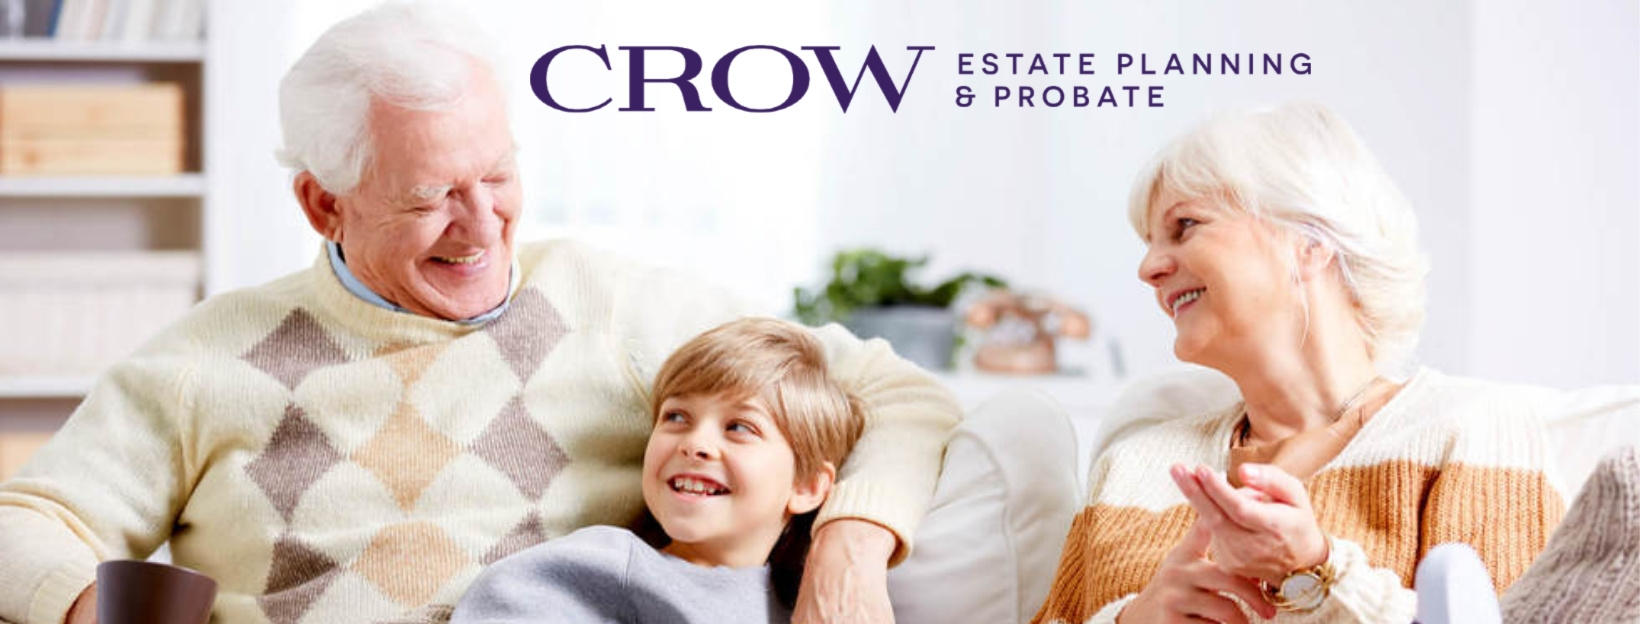 Crow Estate Planning and Probate, PLC (@johnwcrowhopkinsville) Cover Image